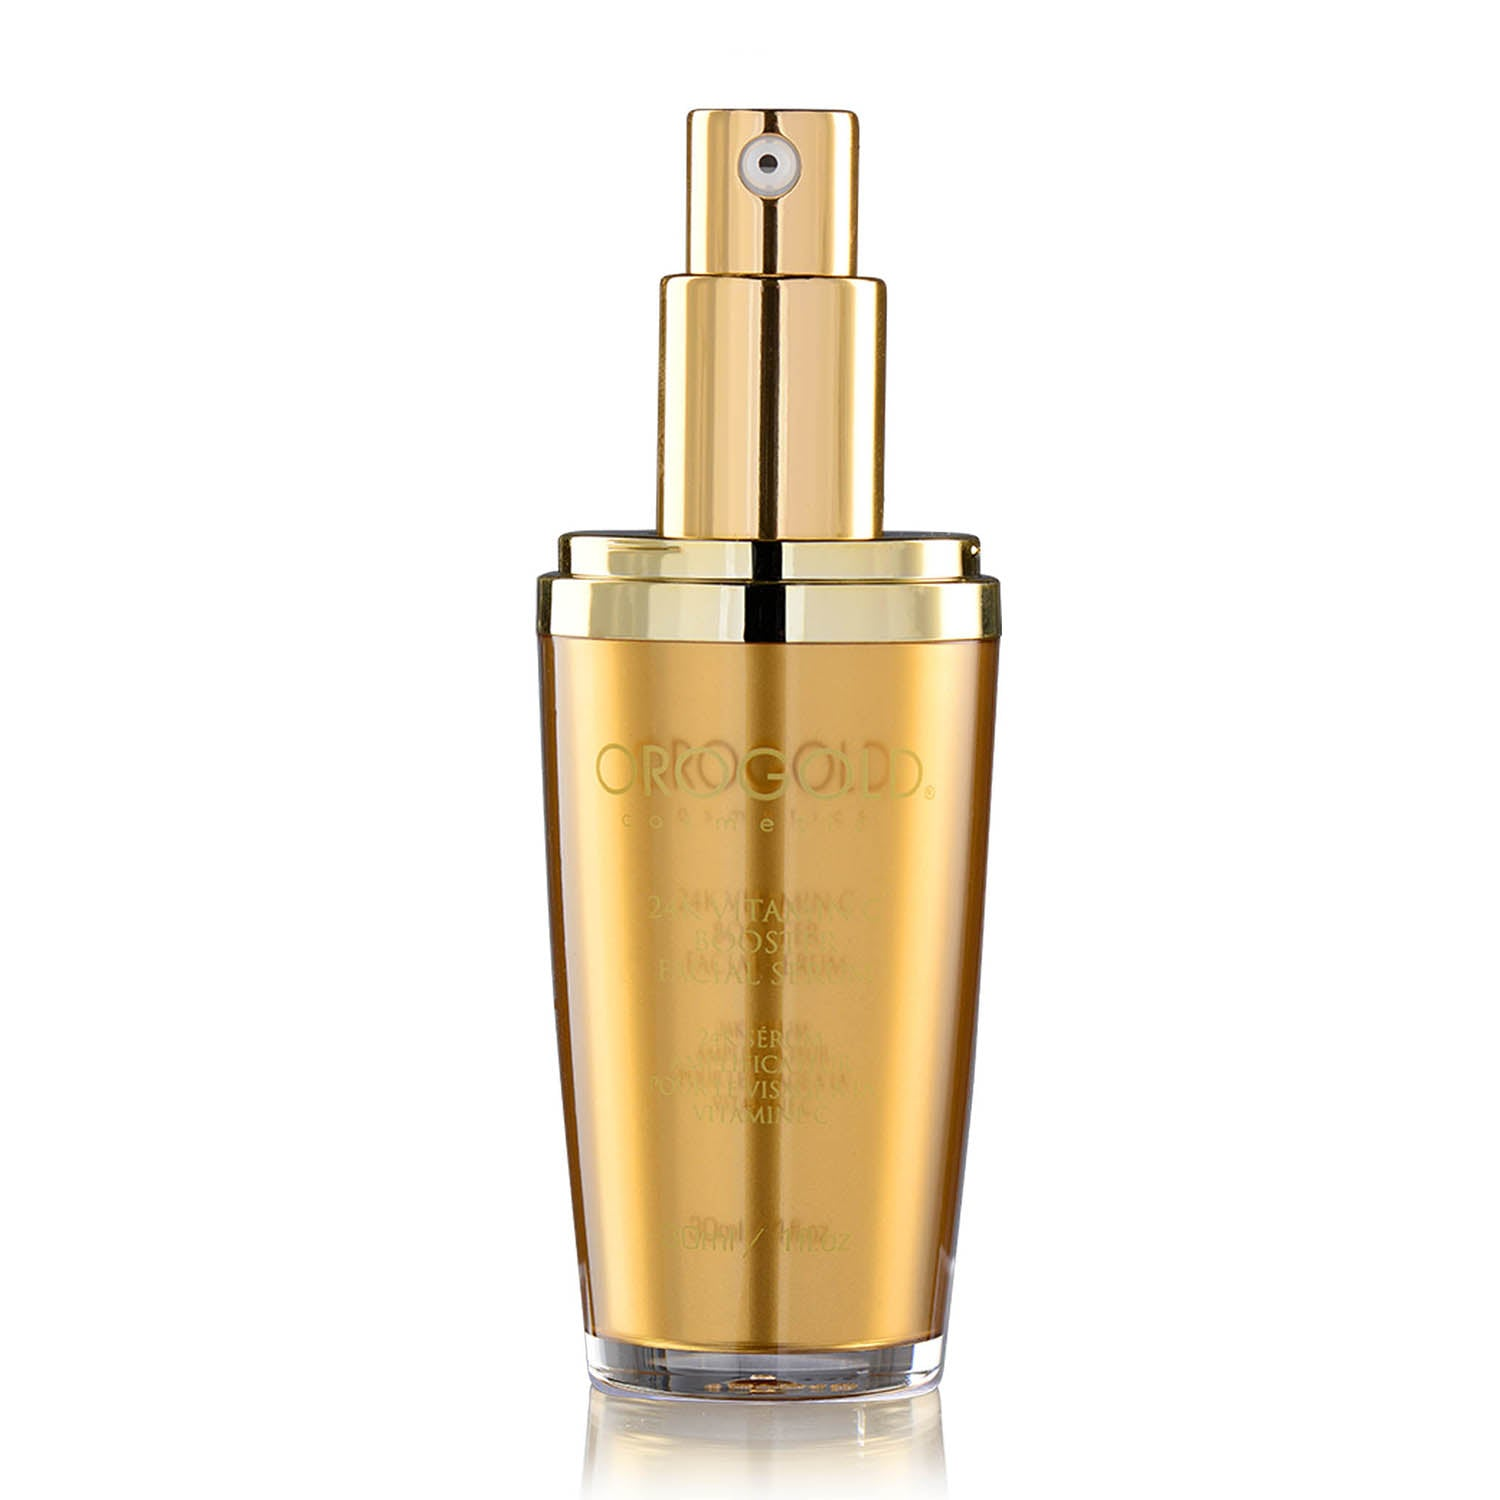 orogold vitamin c serum for face